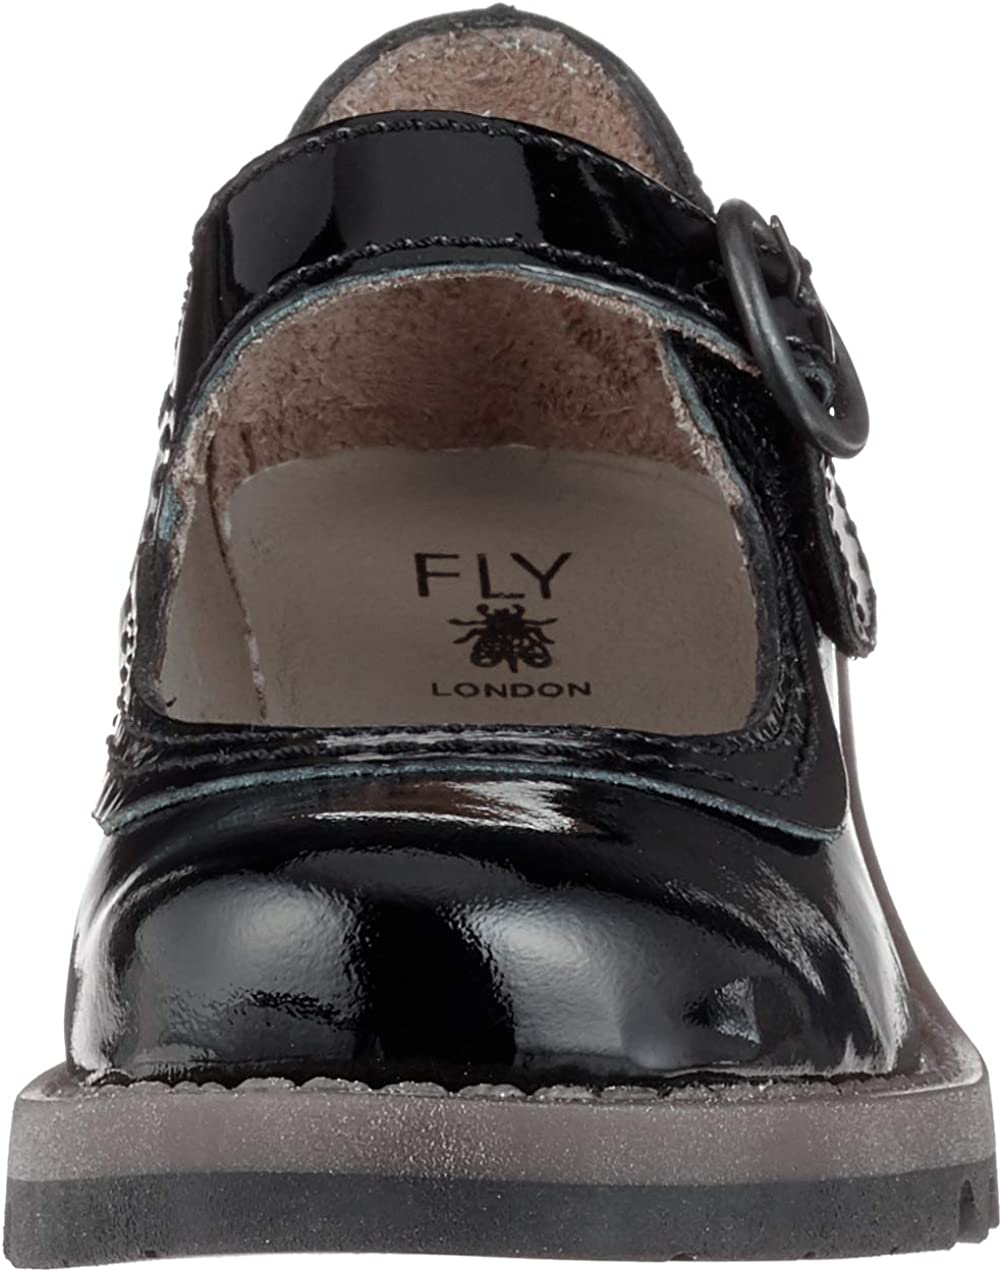 FLY London Girls Siko K Patent Leather Mary Jane Wedge Shoes Junior 6//39 Black Patent